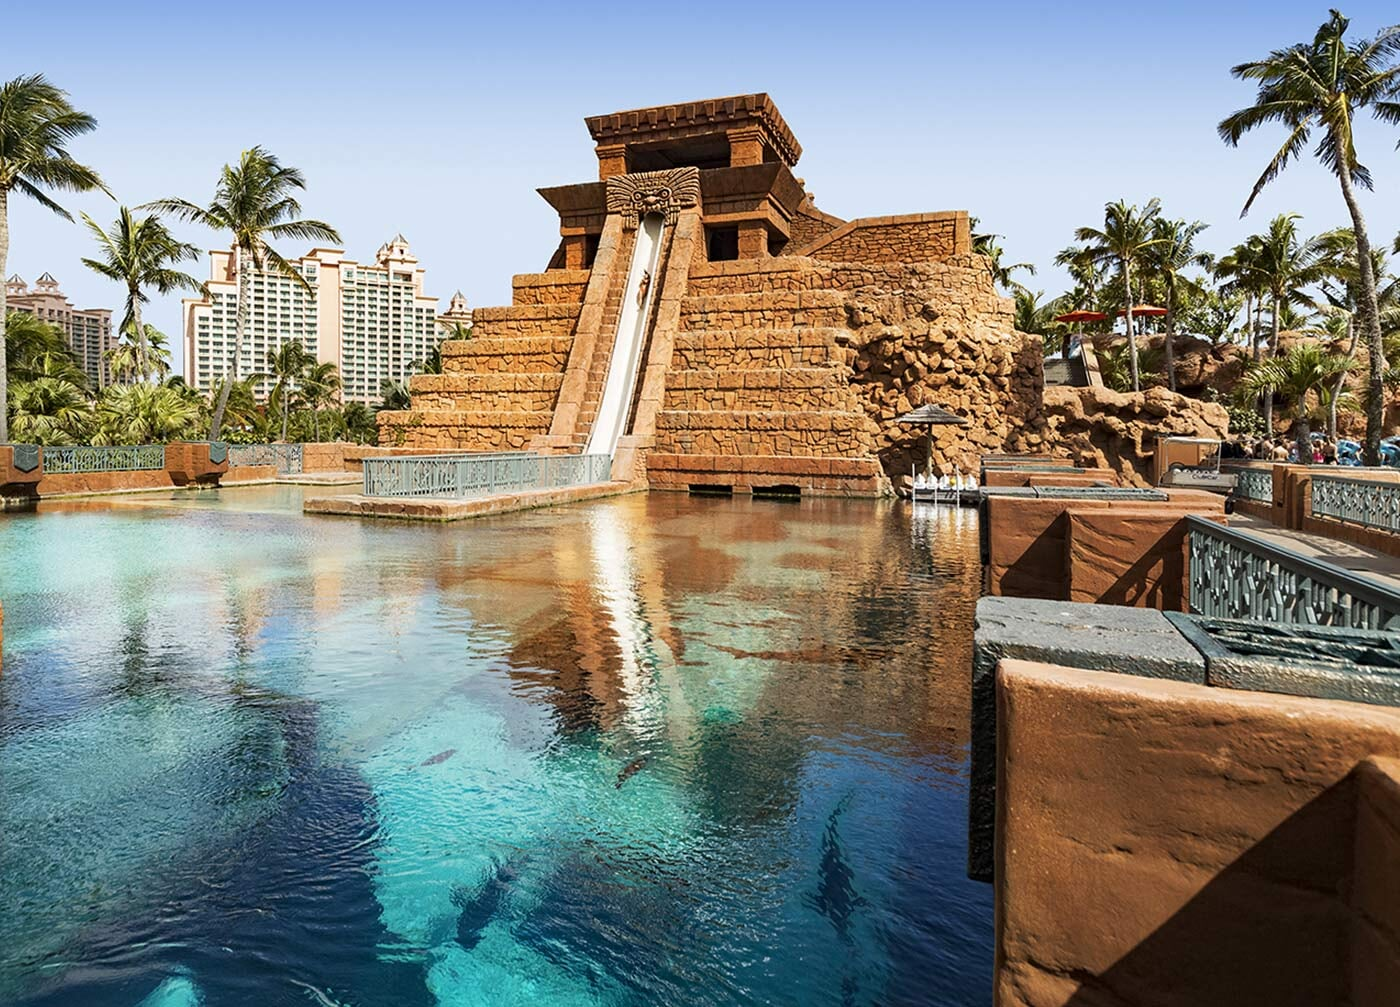 mayan themed design water slide with an aquarium in front filled with marine life